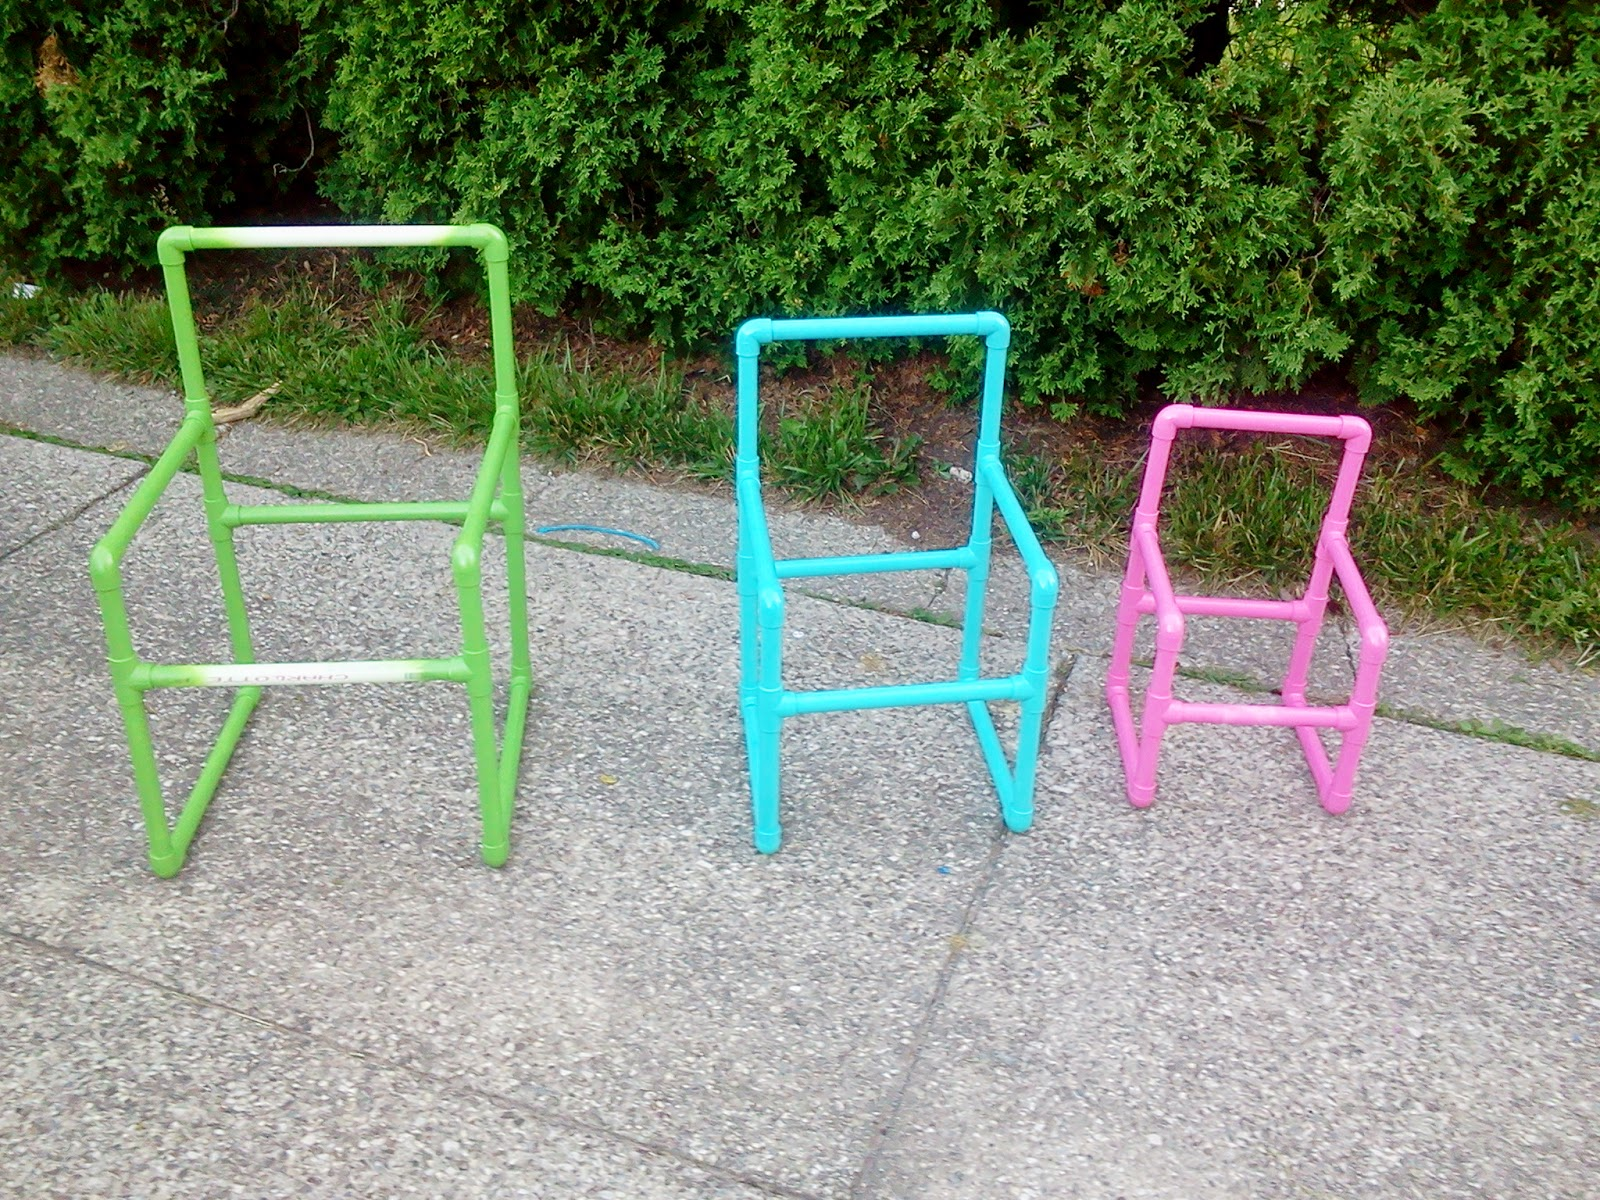 The 5th Brick House The Right PVC Pipe chairs in 3 sizes